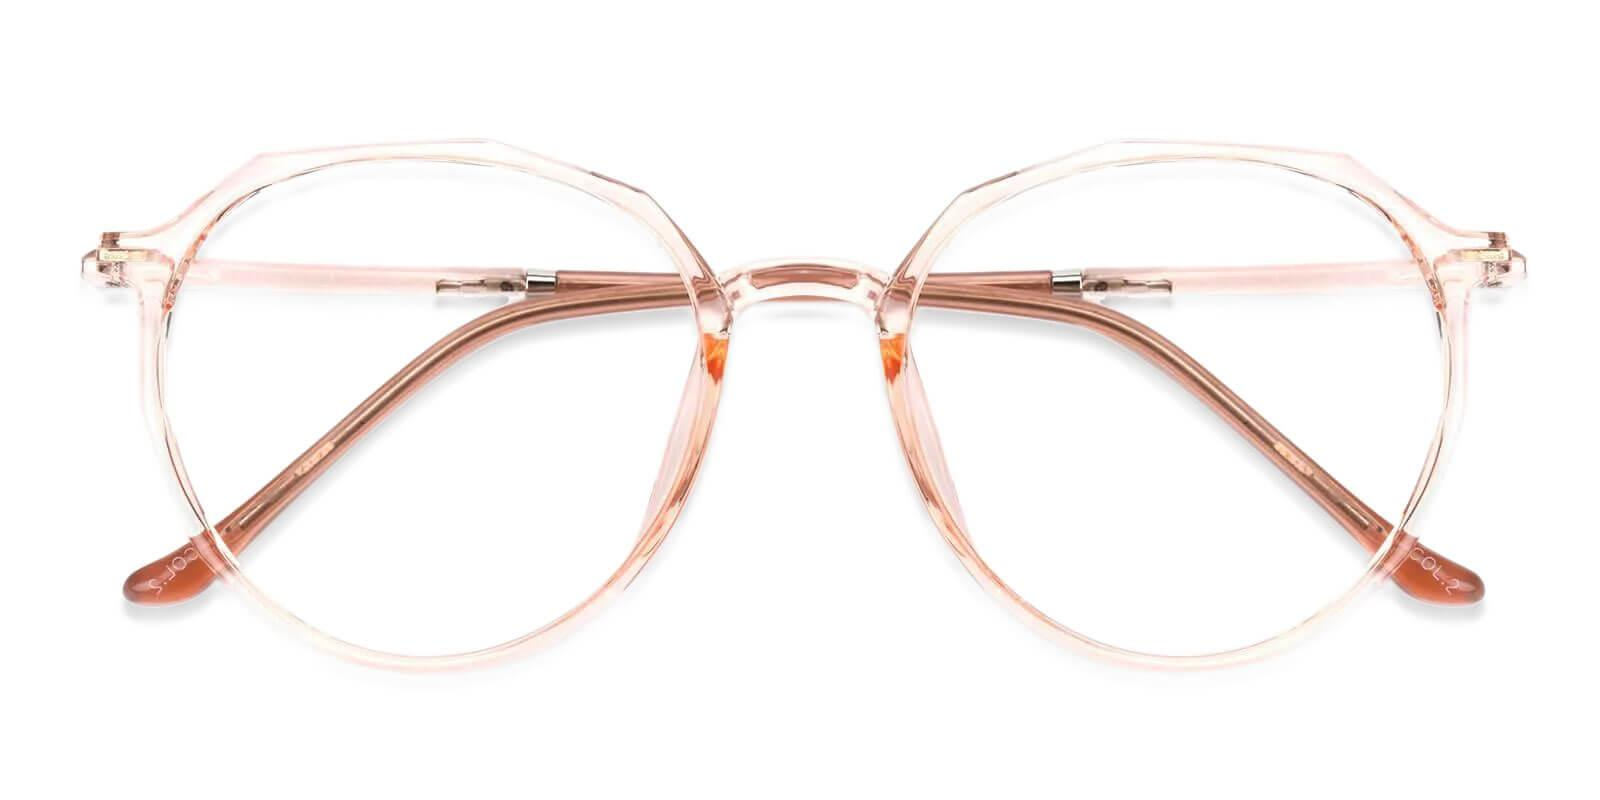 Ruby Orange TR Lightweight , UniversalBridgeFit , Eyeglasses Frames from ABBE Glasses